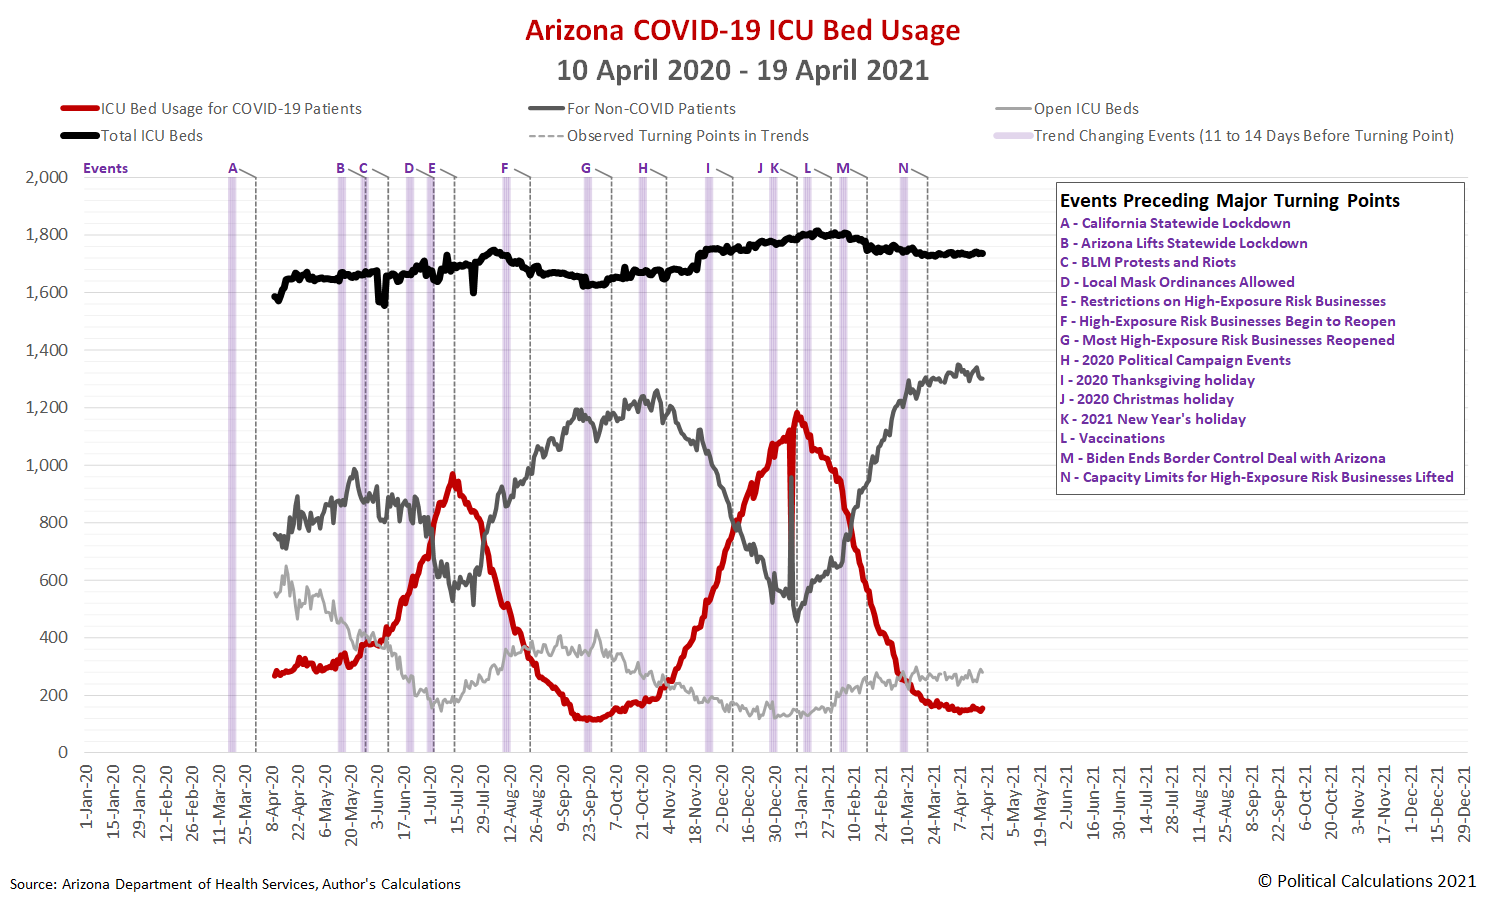 Arizona COVID-19 ICU Bed Usage, 10 April 2020 - 19 April 2021